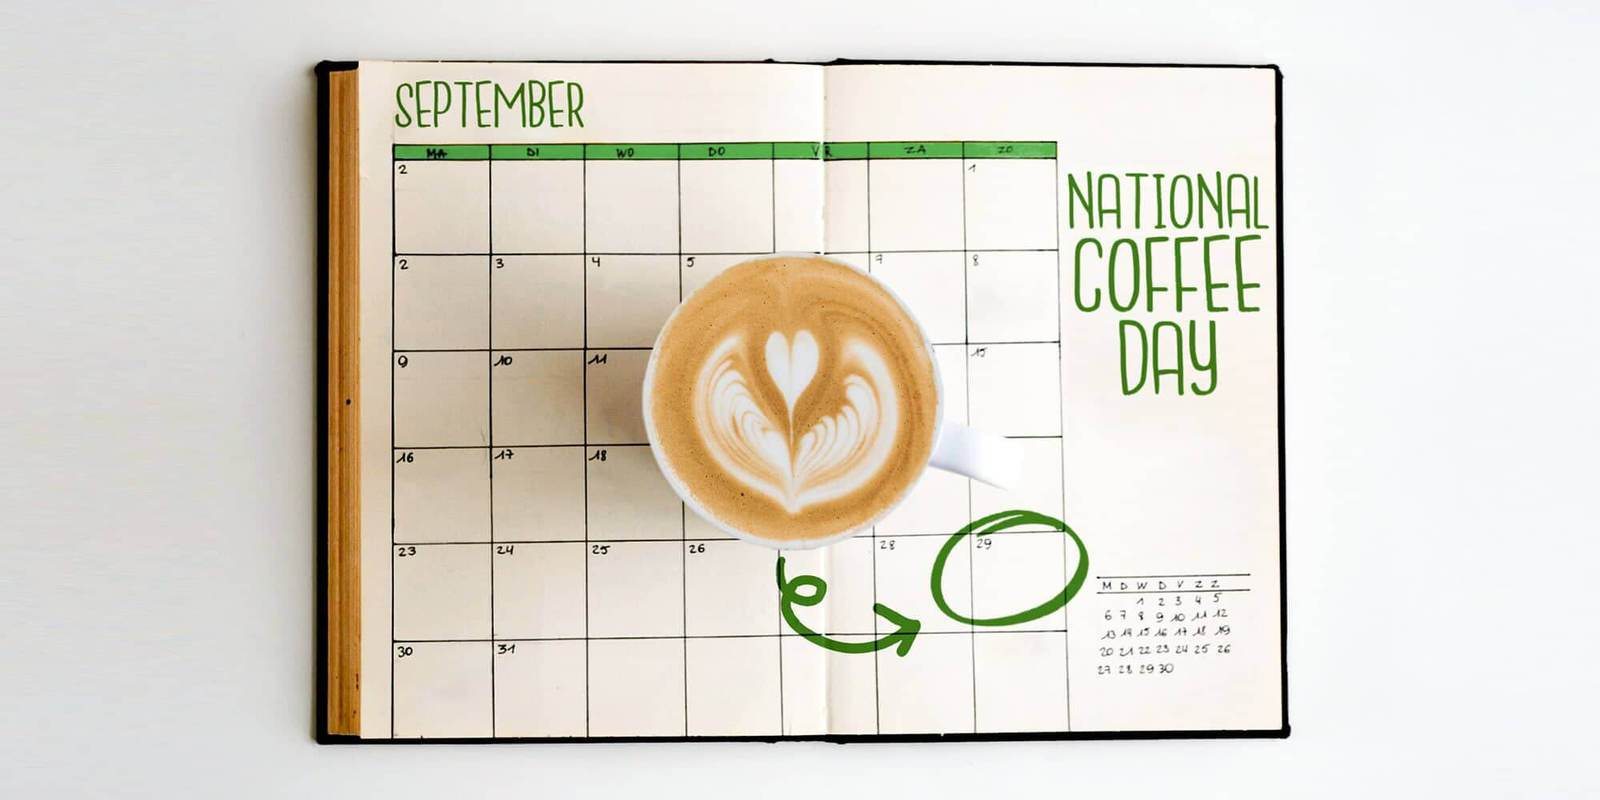 National Coffee Day 2018 – Don't Miss Out On September 29th